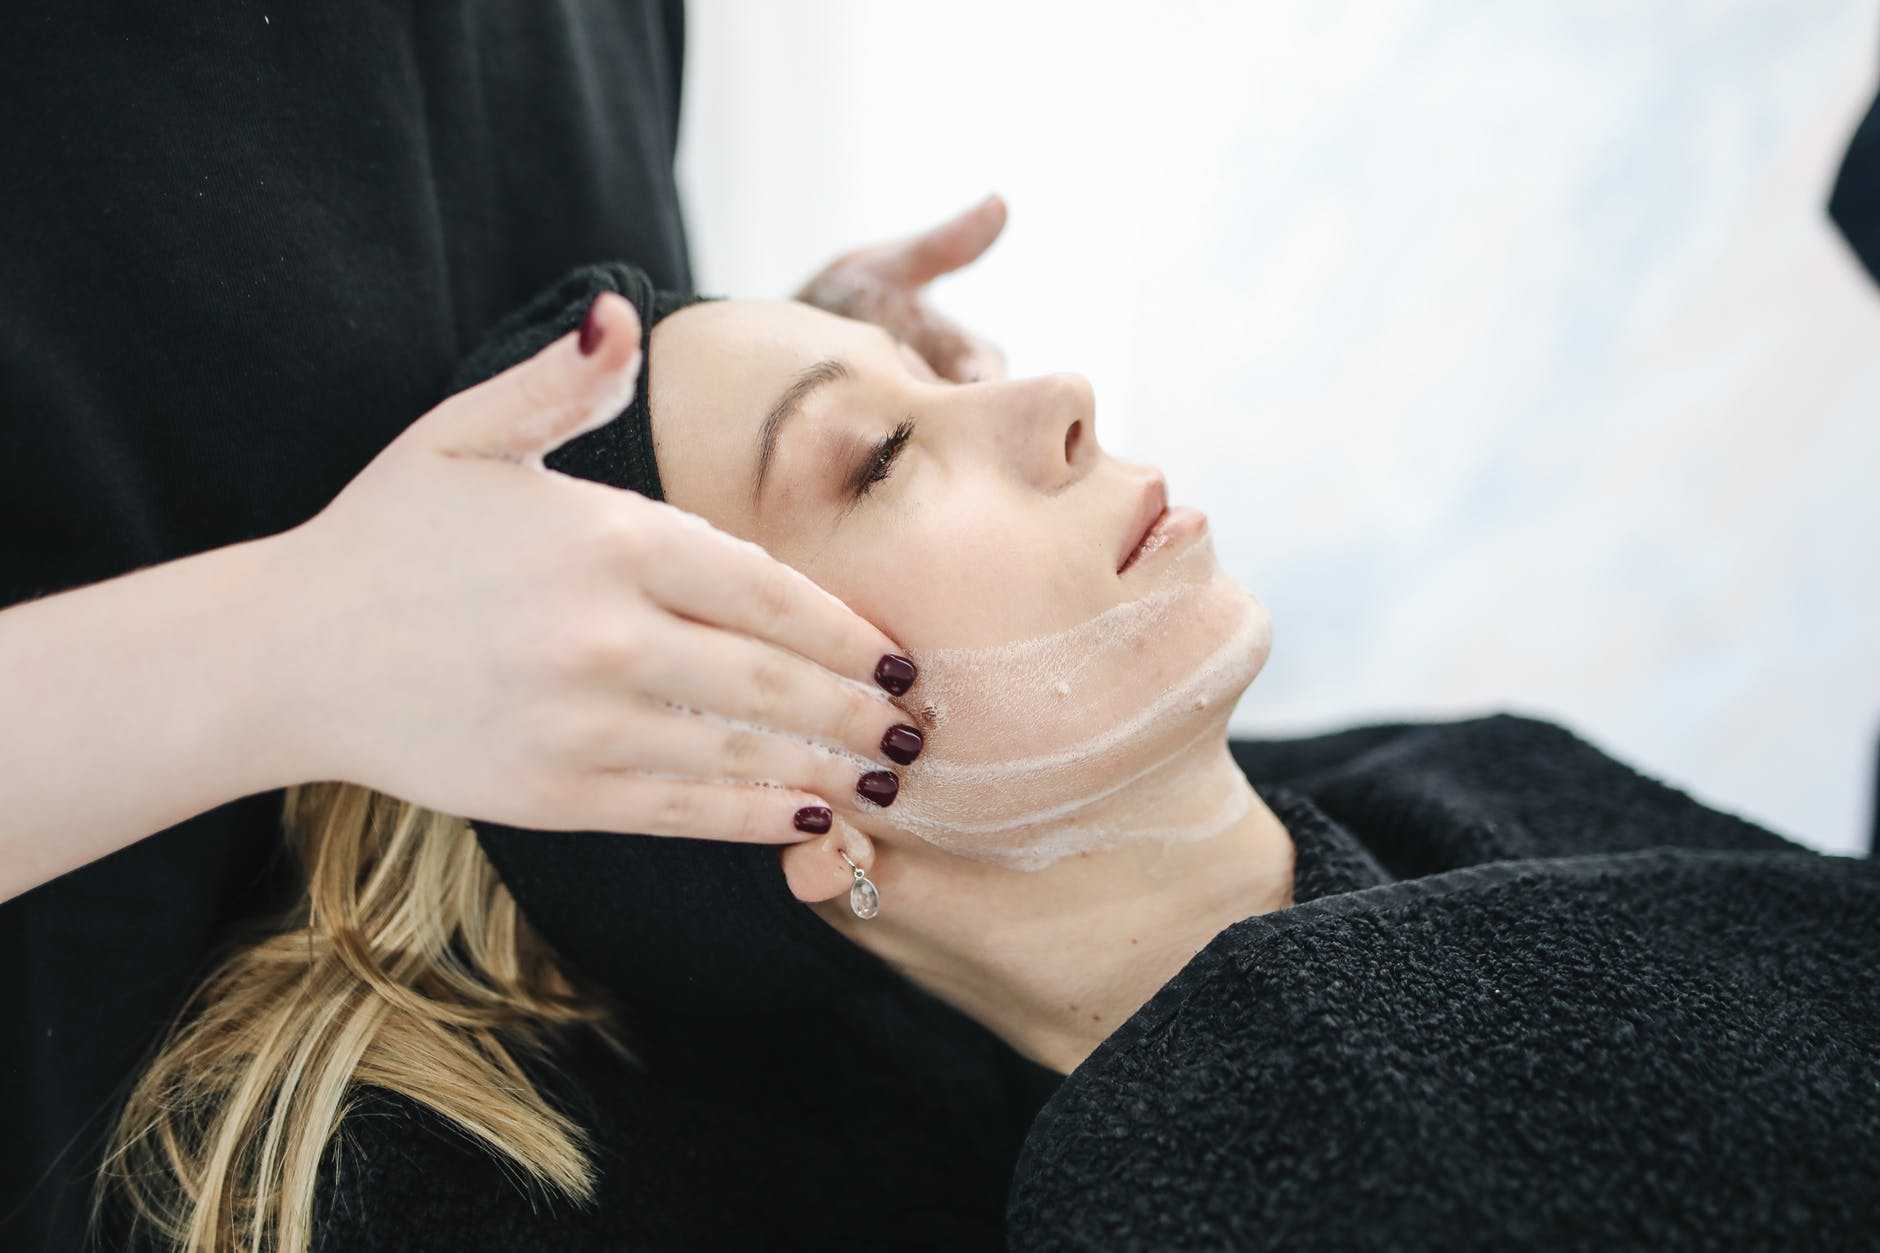 You may have heard about Ultherapy skin tightening treatments already, but is it for you? Come find out more and decide for yourself.